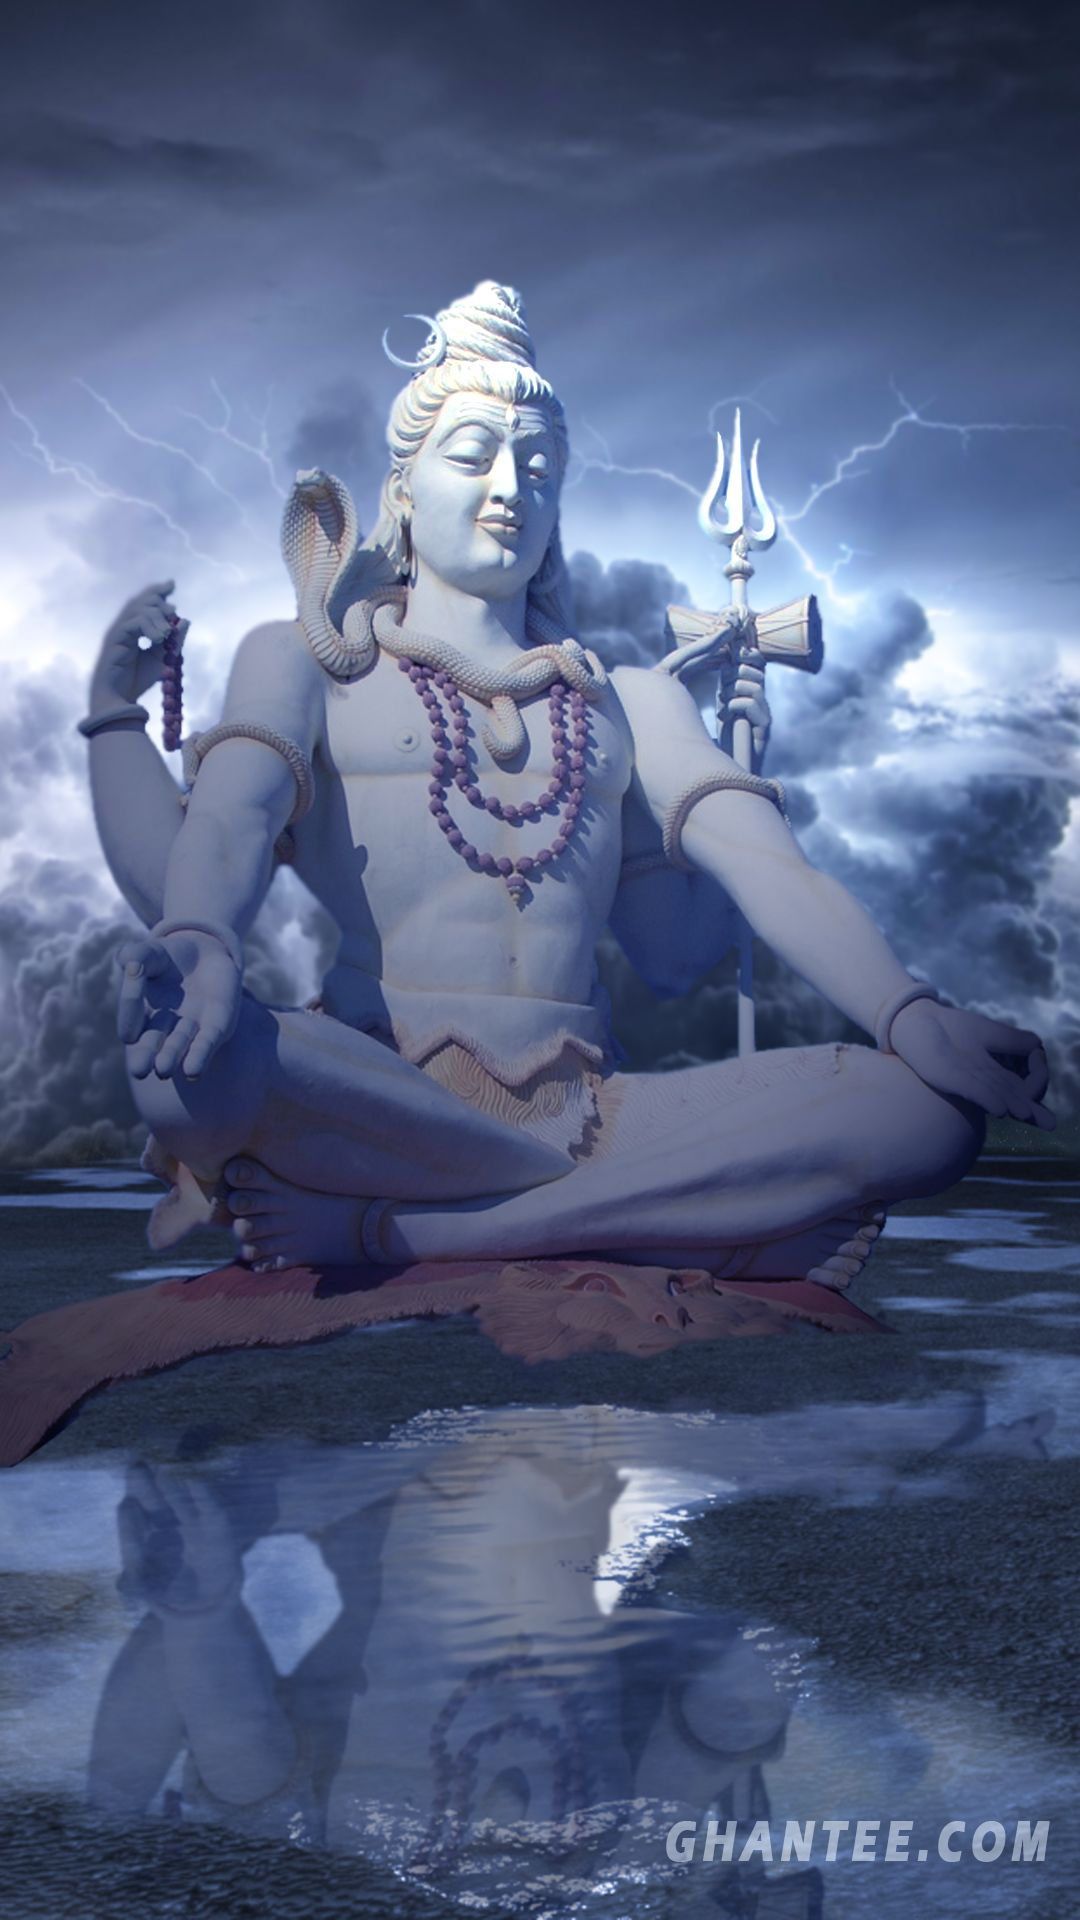 Shiv Hd Wallpaper For Iphone And Android Lord Shiva Hd Images Hd Wallpaper Iphone Lord Shiva Hd Wallpaper